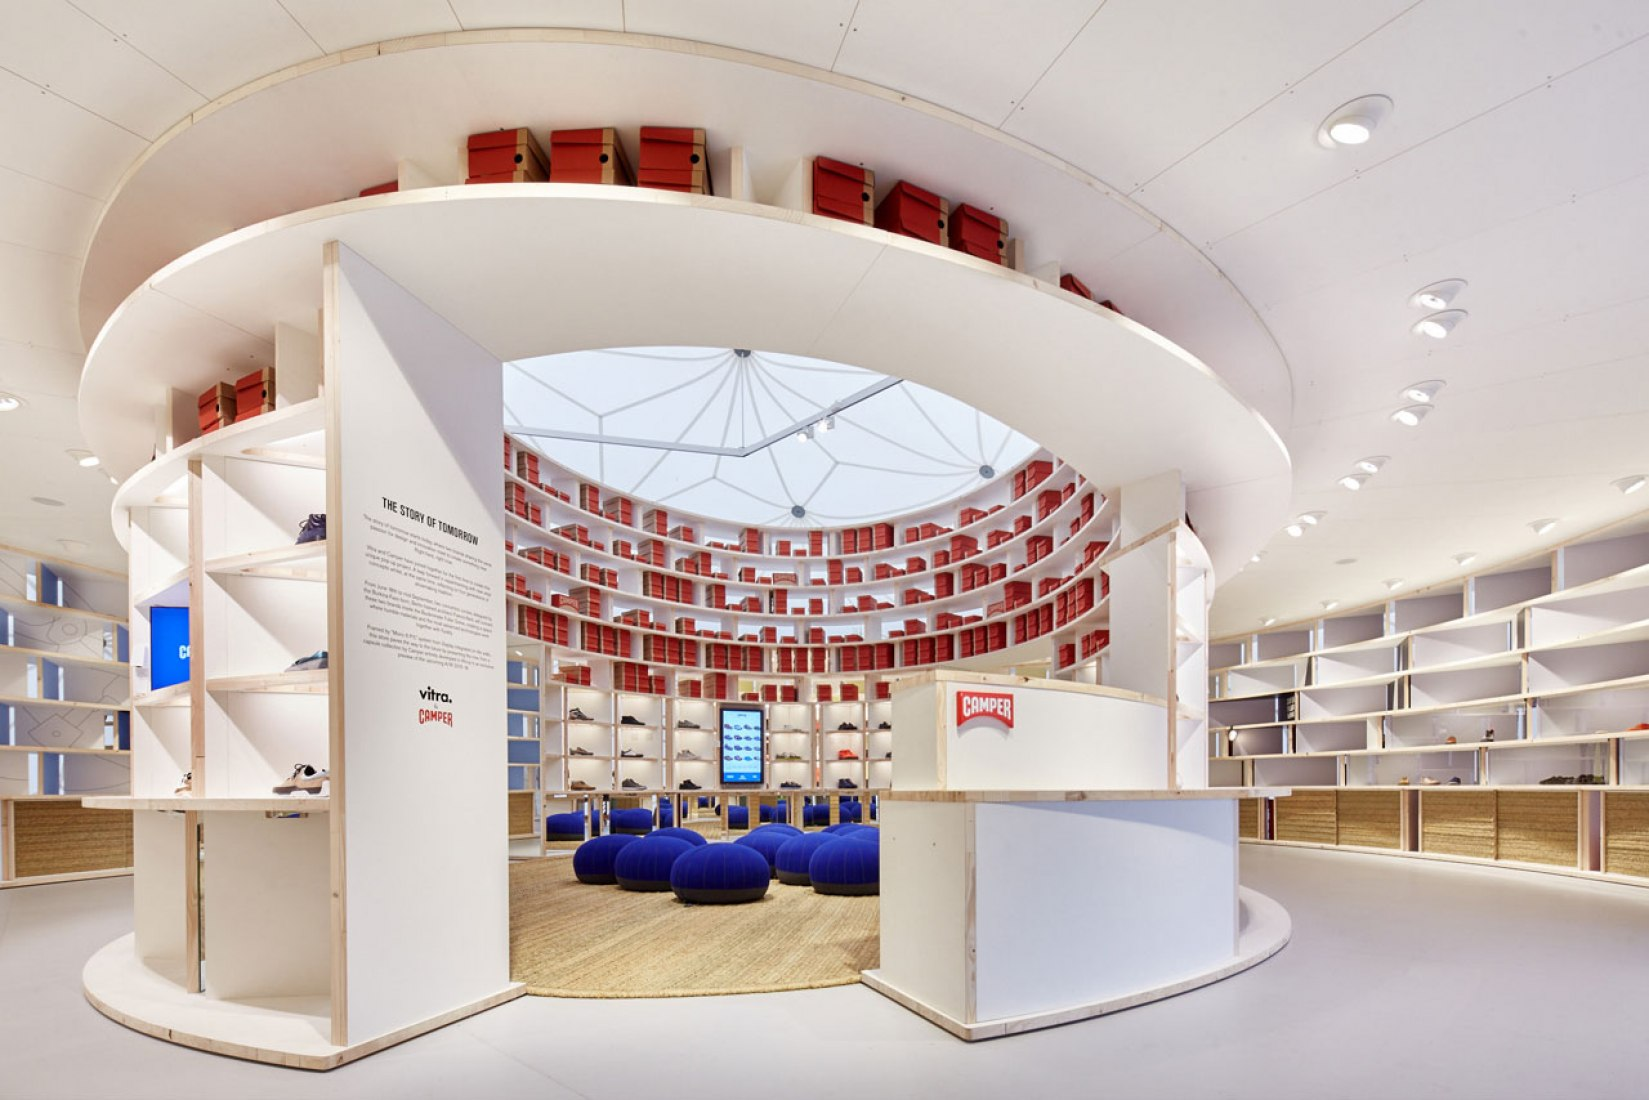 Interior view. Vitra & Camper: Pop-up project on the Vitra Campus by Kere Architecture. Image courtesy of Vitra.